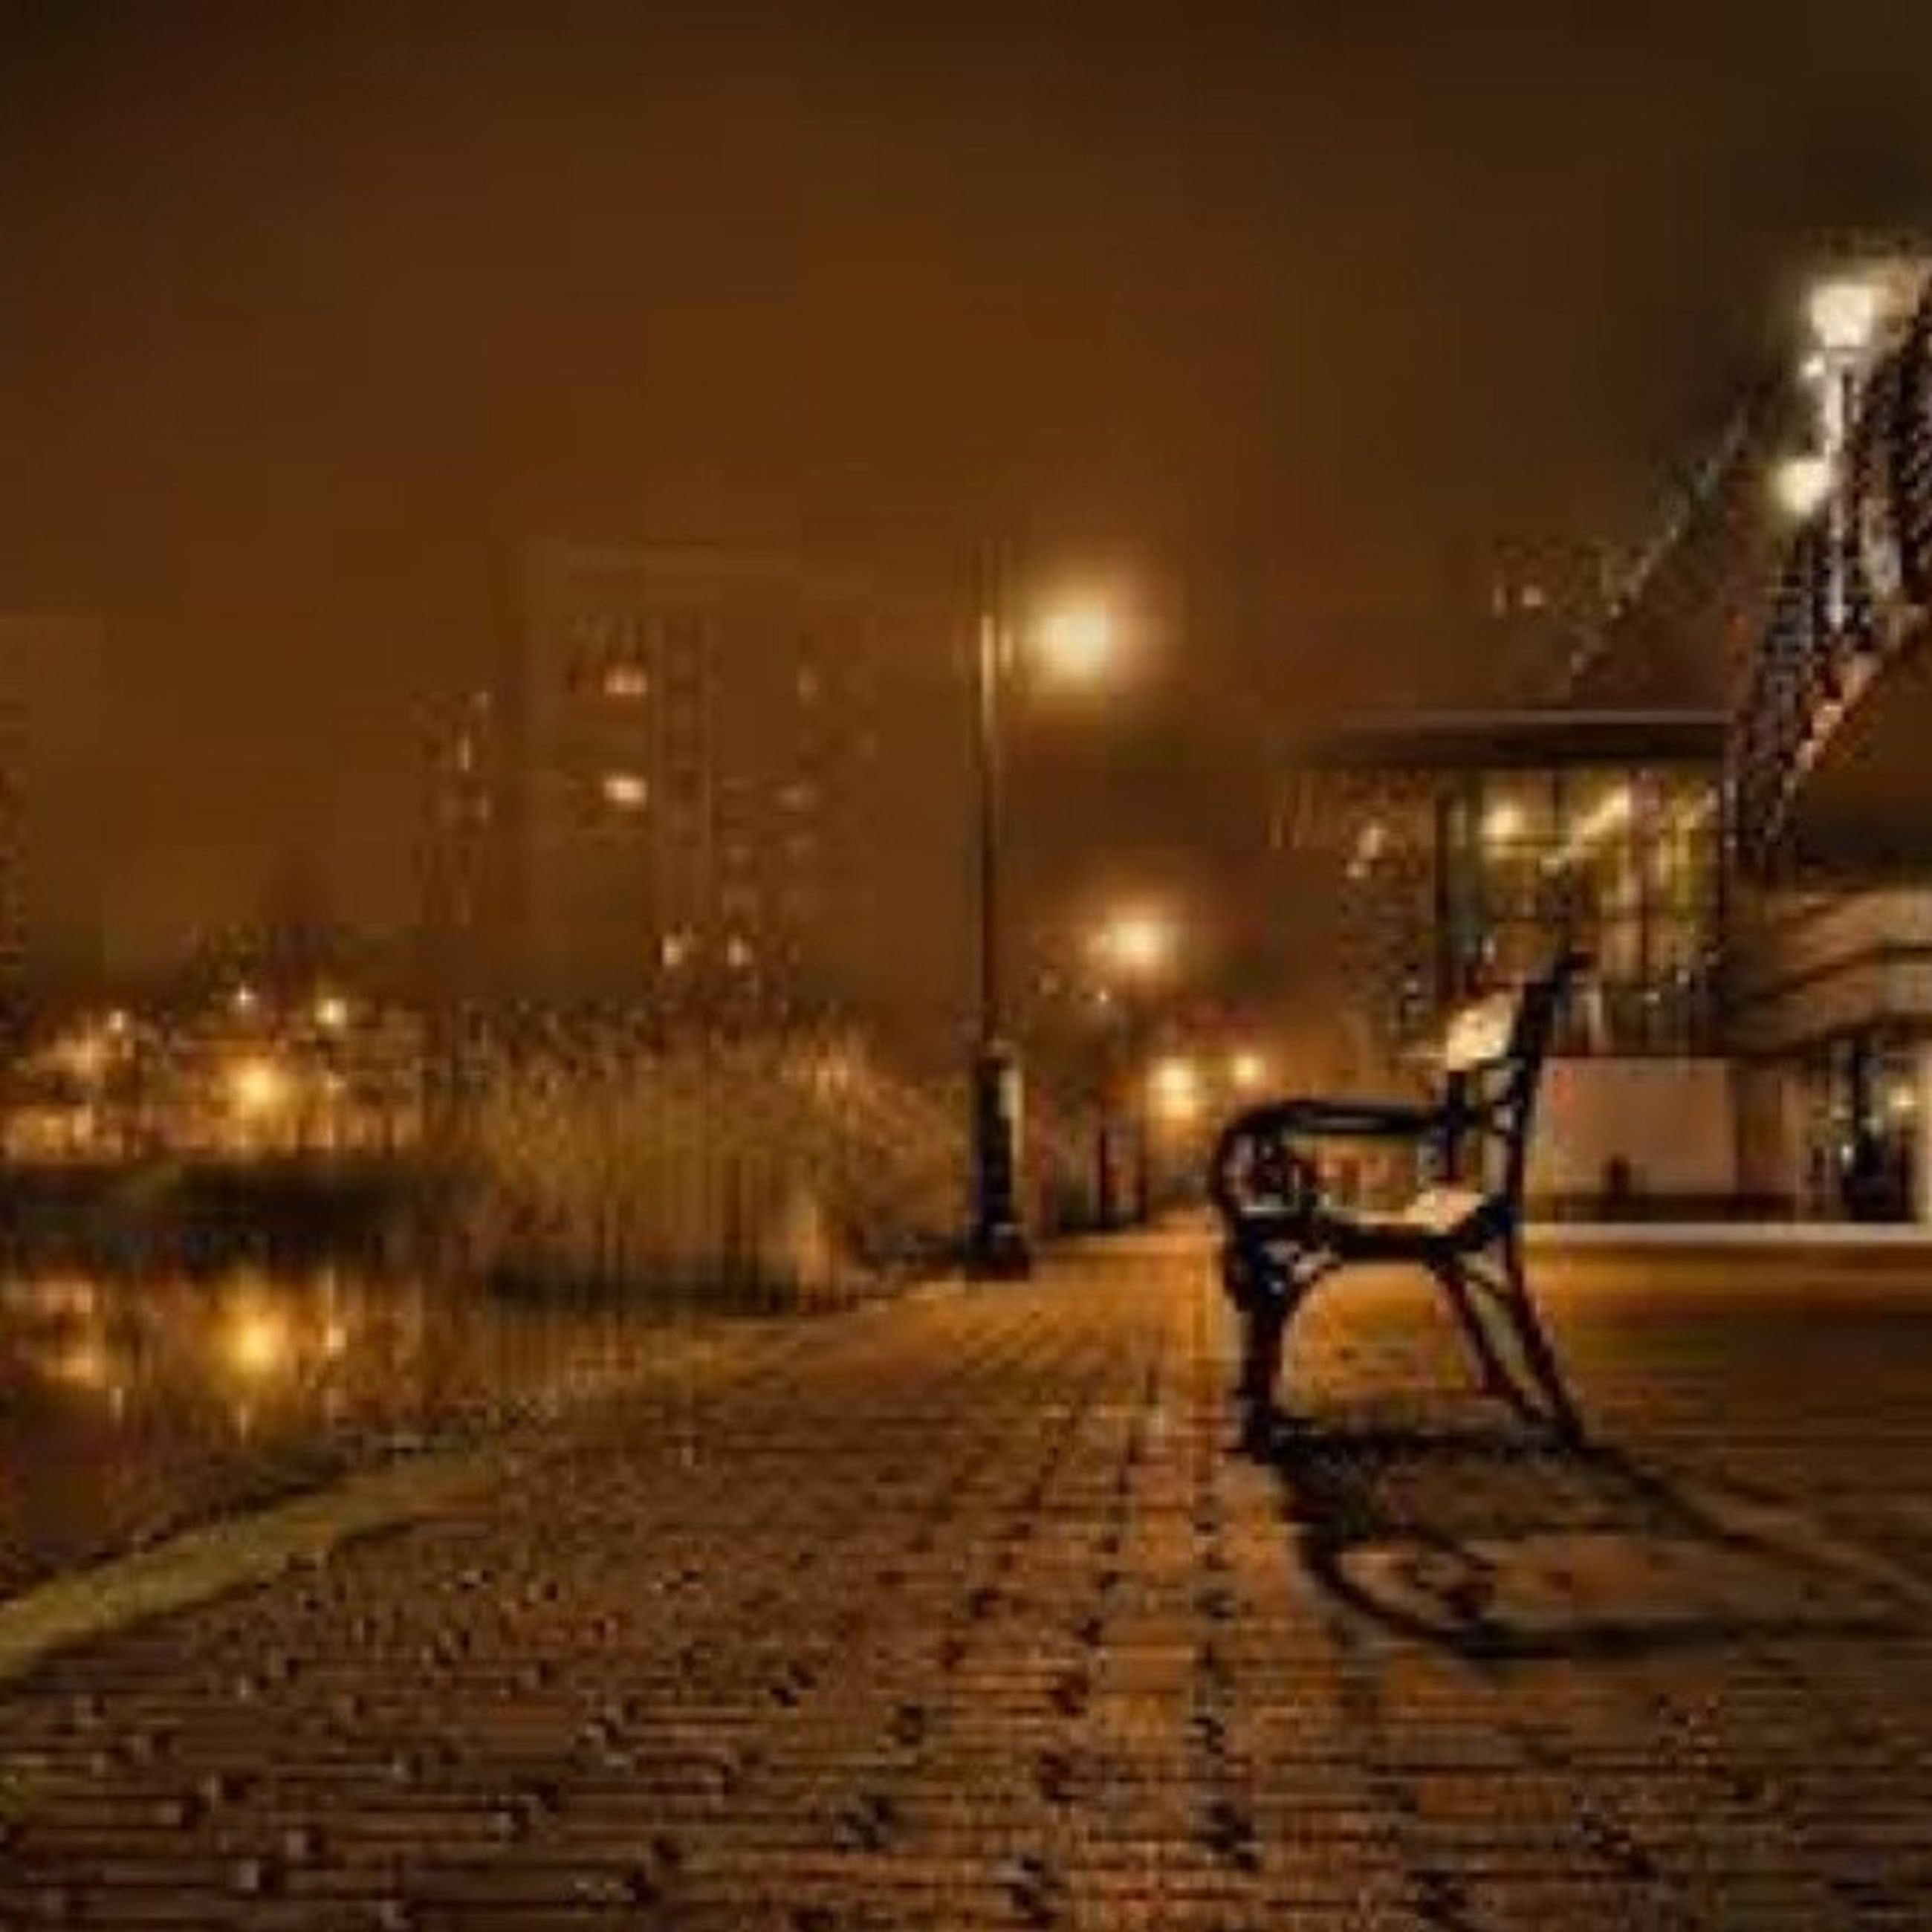 night, illuminated, the way forward, built structure, building exterior, street, architecture, street light, city, transportation, lighting equipment, empty, bicycle, road, electricity, sidewalk, diminishing perspective, outdoors, absence, cobblestone